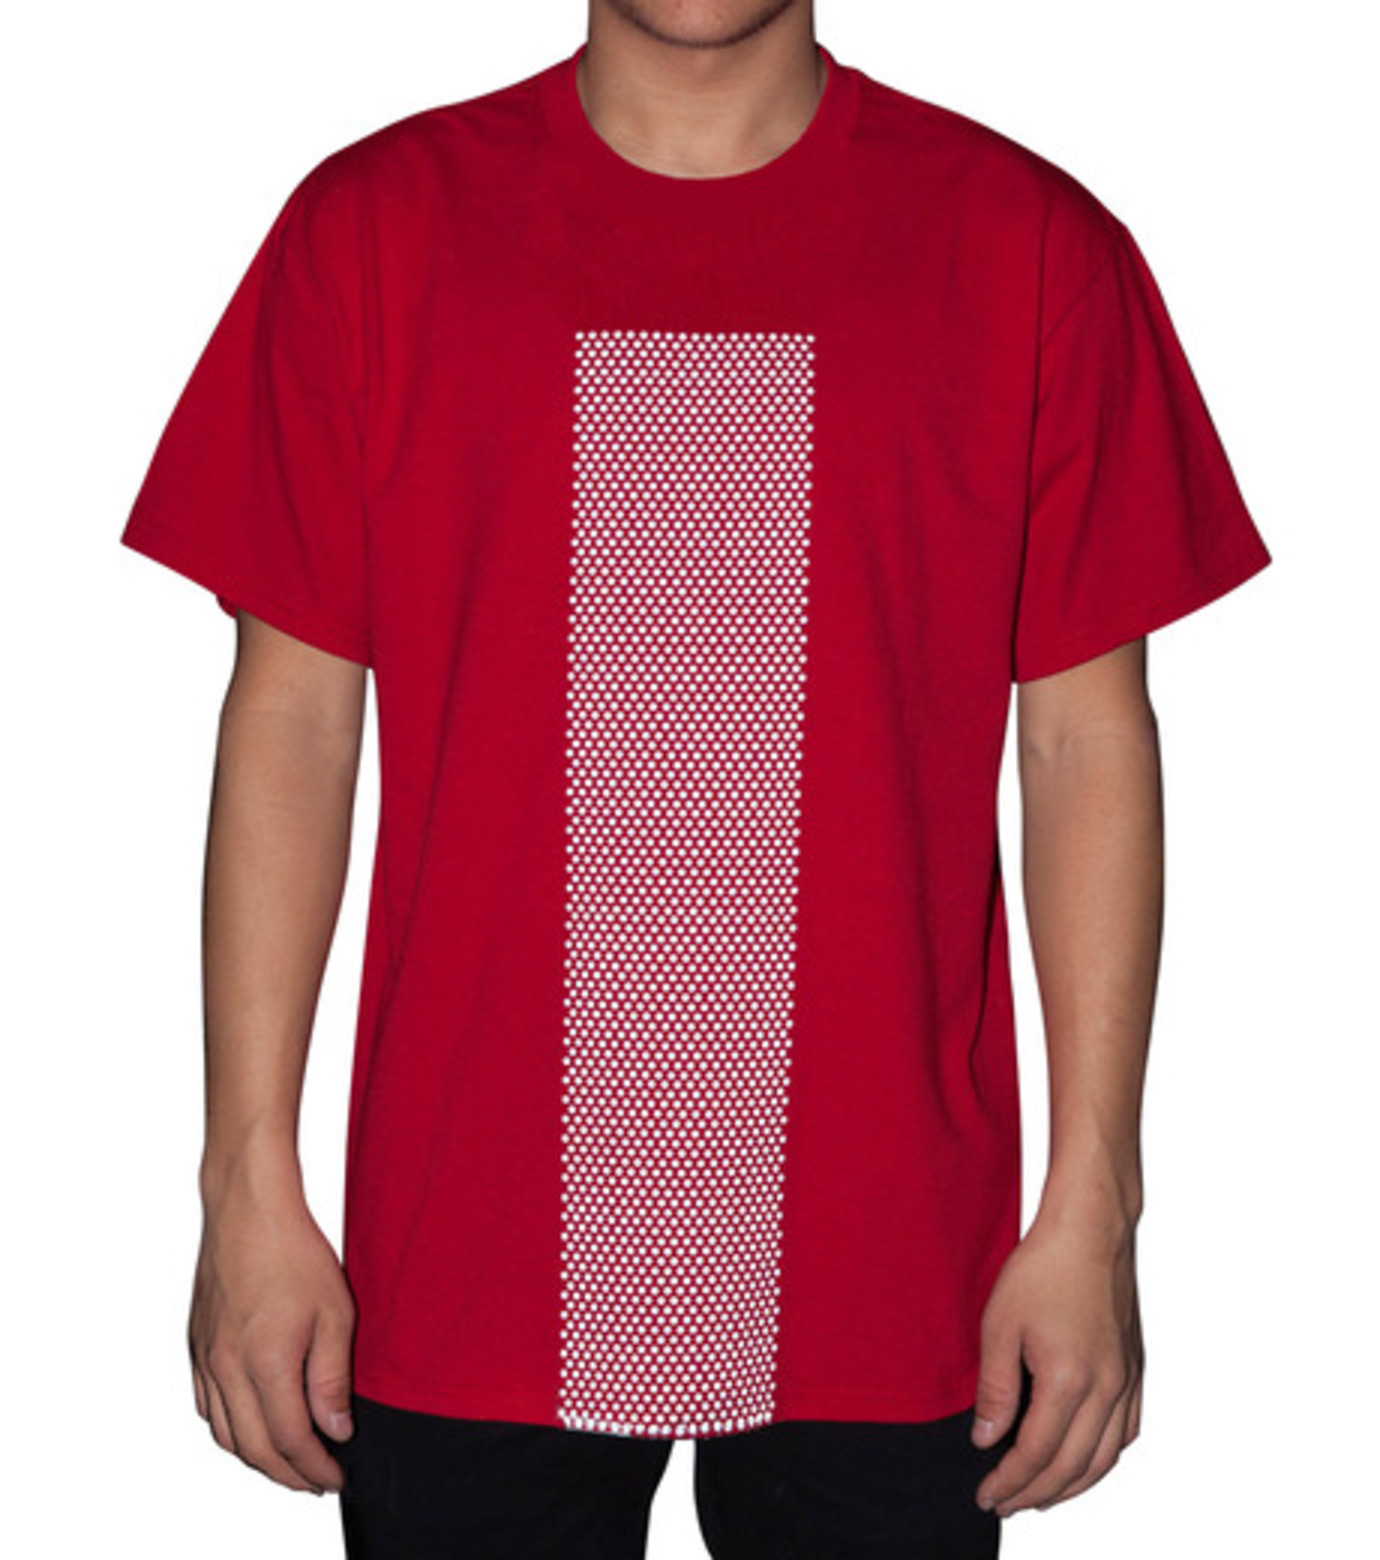 ICNY(アイ・シー・エヌ・ワイ)のRun Over Tee-RED(T-SHIRTS/T-SHIRTS)-RNOT-62 拡大詳細画像3